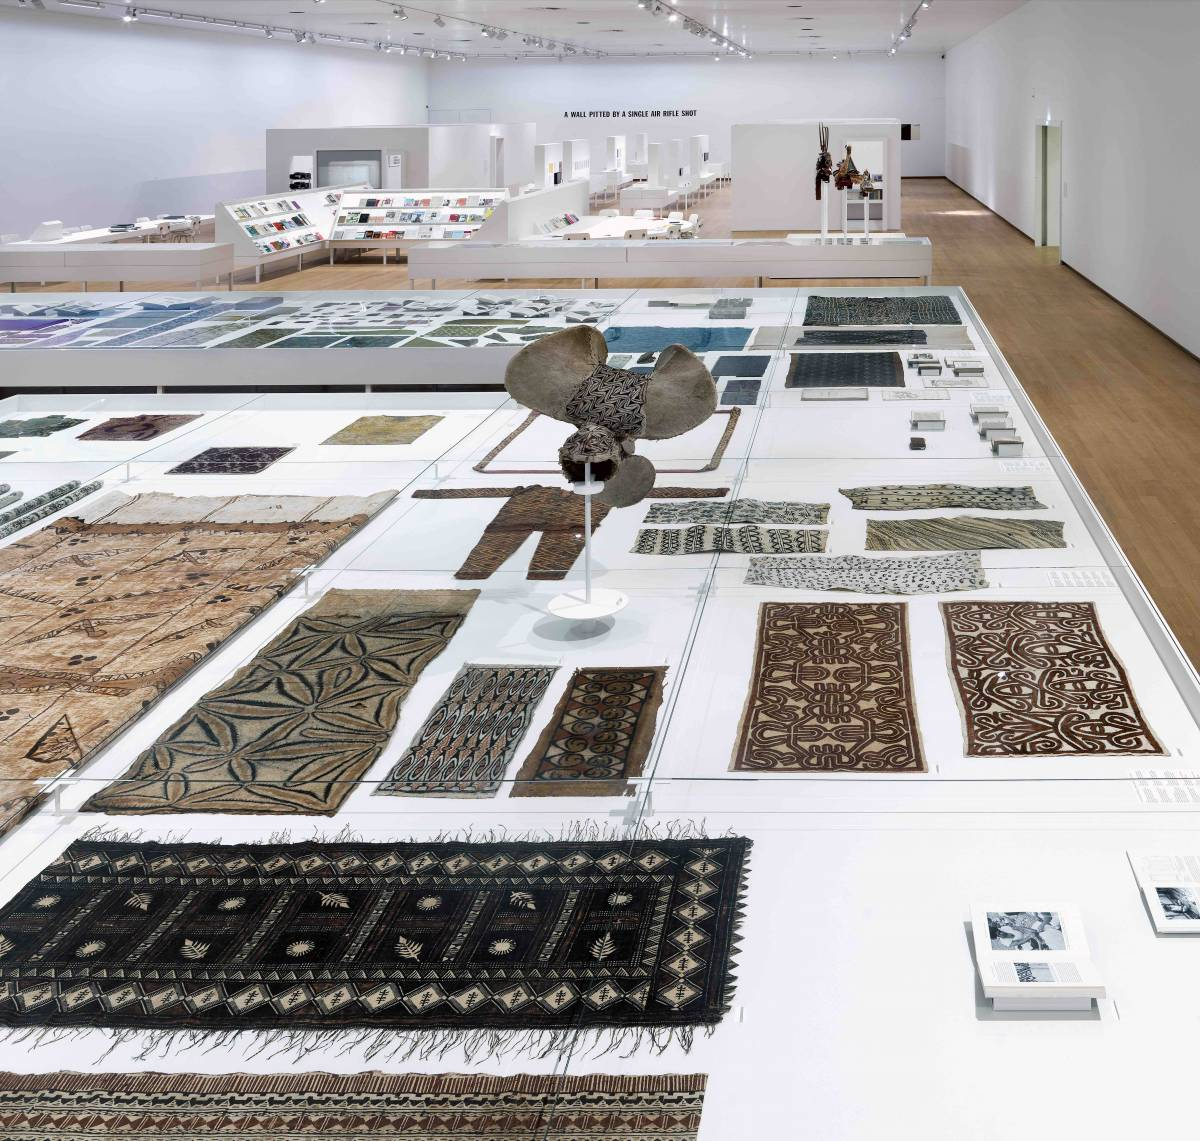 Installation view with in front selection from the SST textile collection,  Seth Siegelaub – Beyond Conceptual Art, Stedelijk Museum, Amsterdam, December 2015 – April 2016